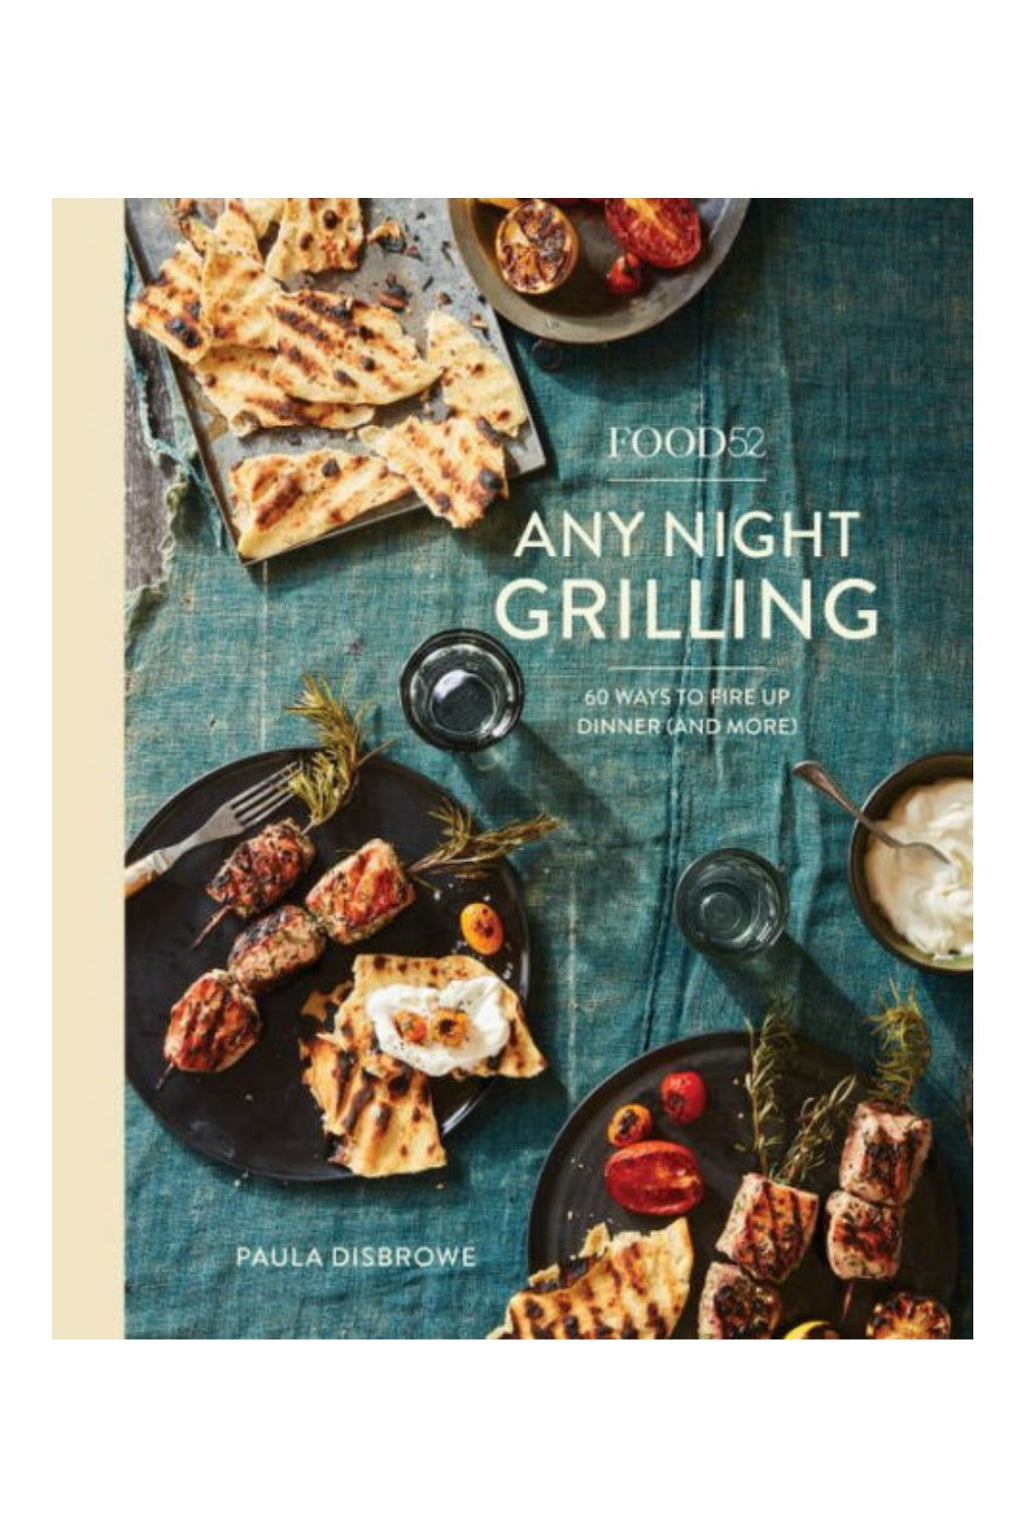 Random House Random House Food52 Any Night Grilling: 60 Ways to Fire Up Dinner (and More) by Paula Disbrowe, Amanda Hesser (Foreword by)